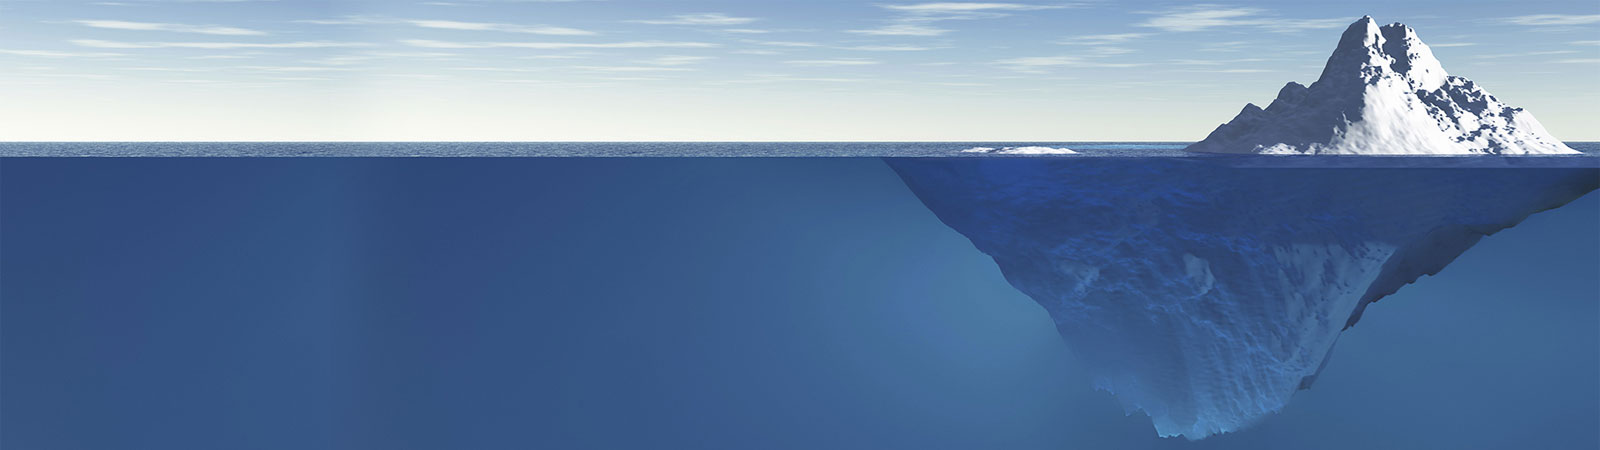 big data iceberg2